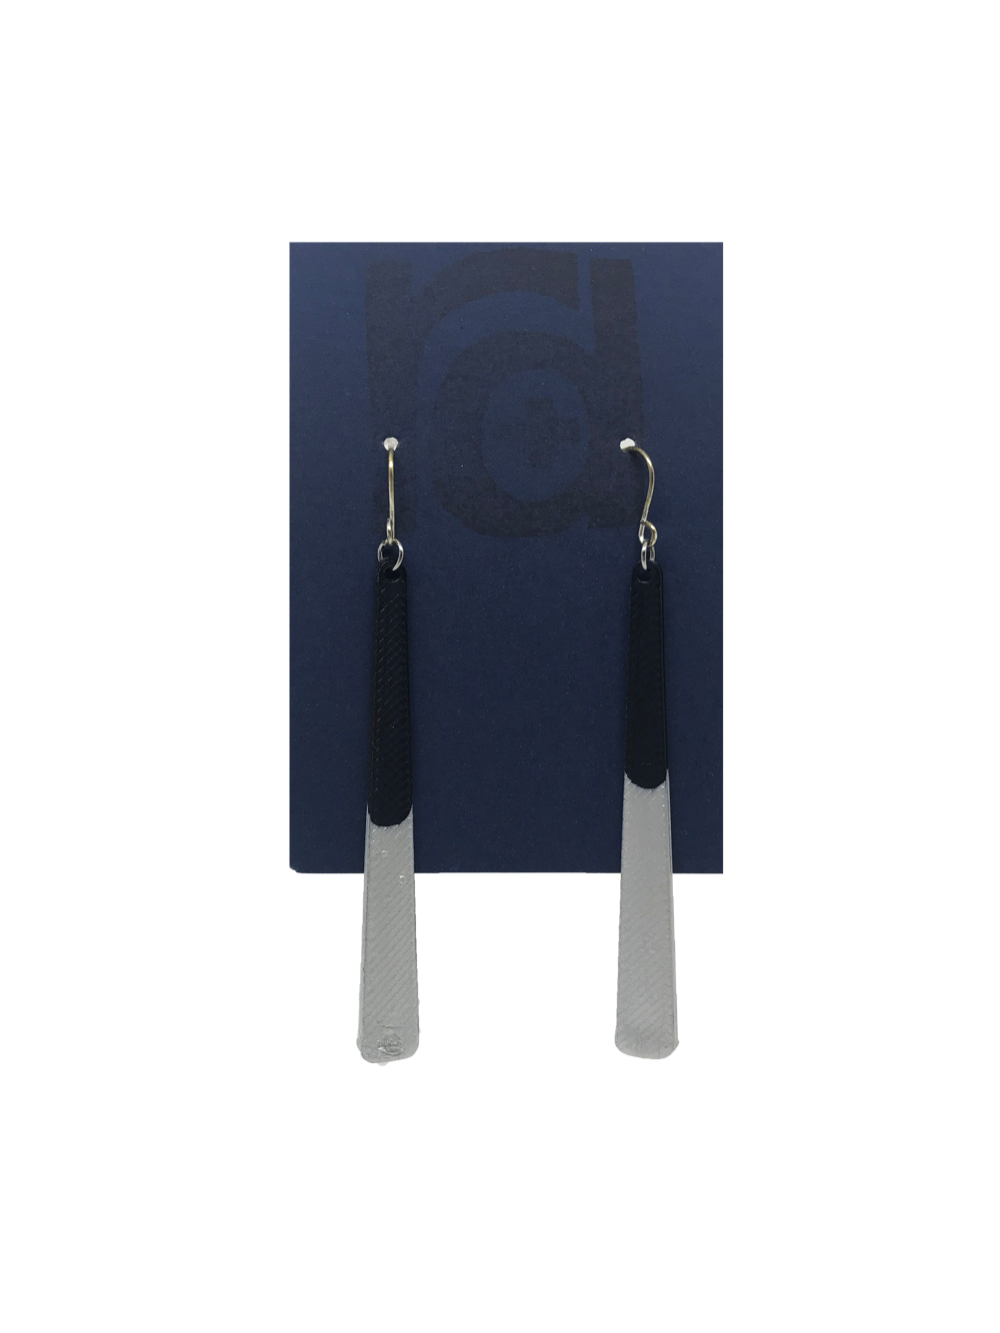 Shown on a sustainable dark blue earring card, these earrings are long dangles that flare out slightly. The black plant based earring is dipped into metallic silver paint to give a perfect shimmering accent.